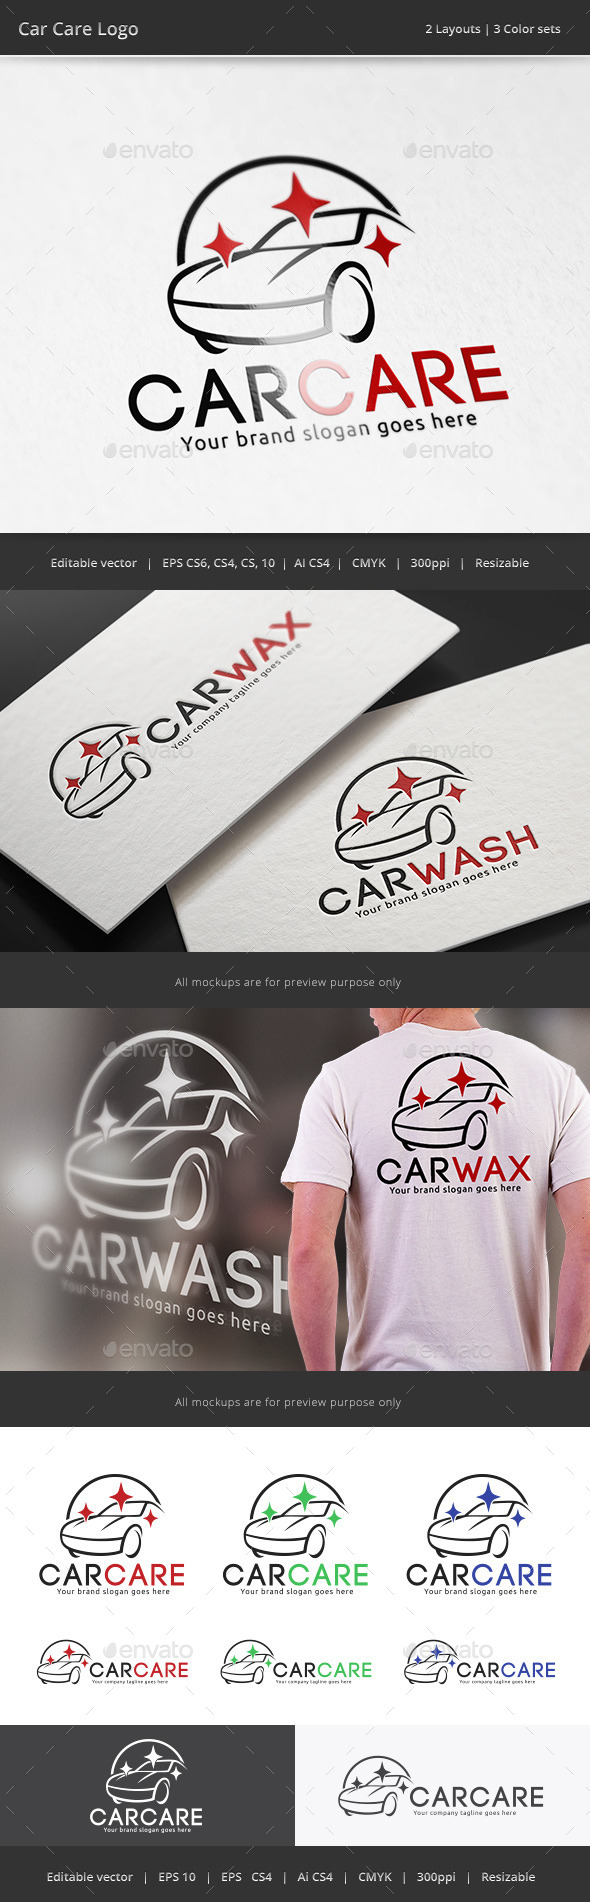 GraphicRiver Car Care Logo 10688926